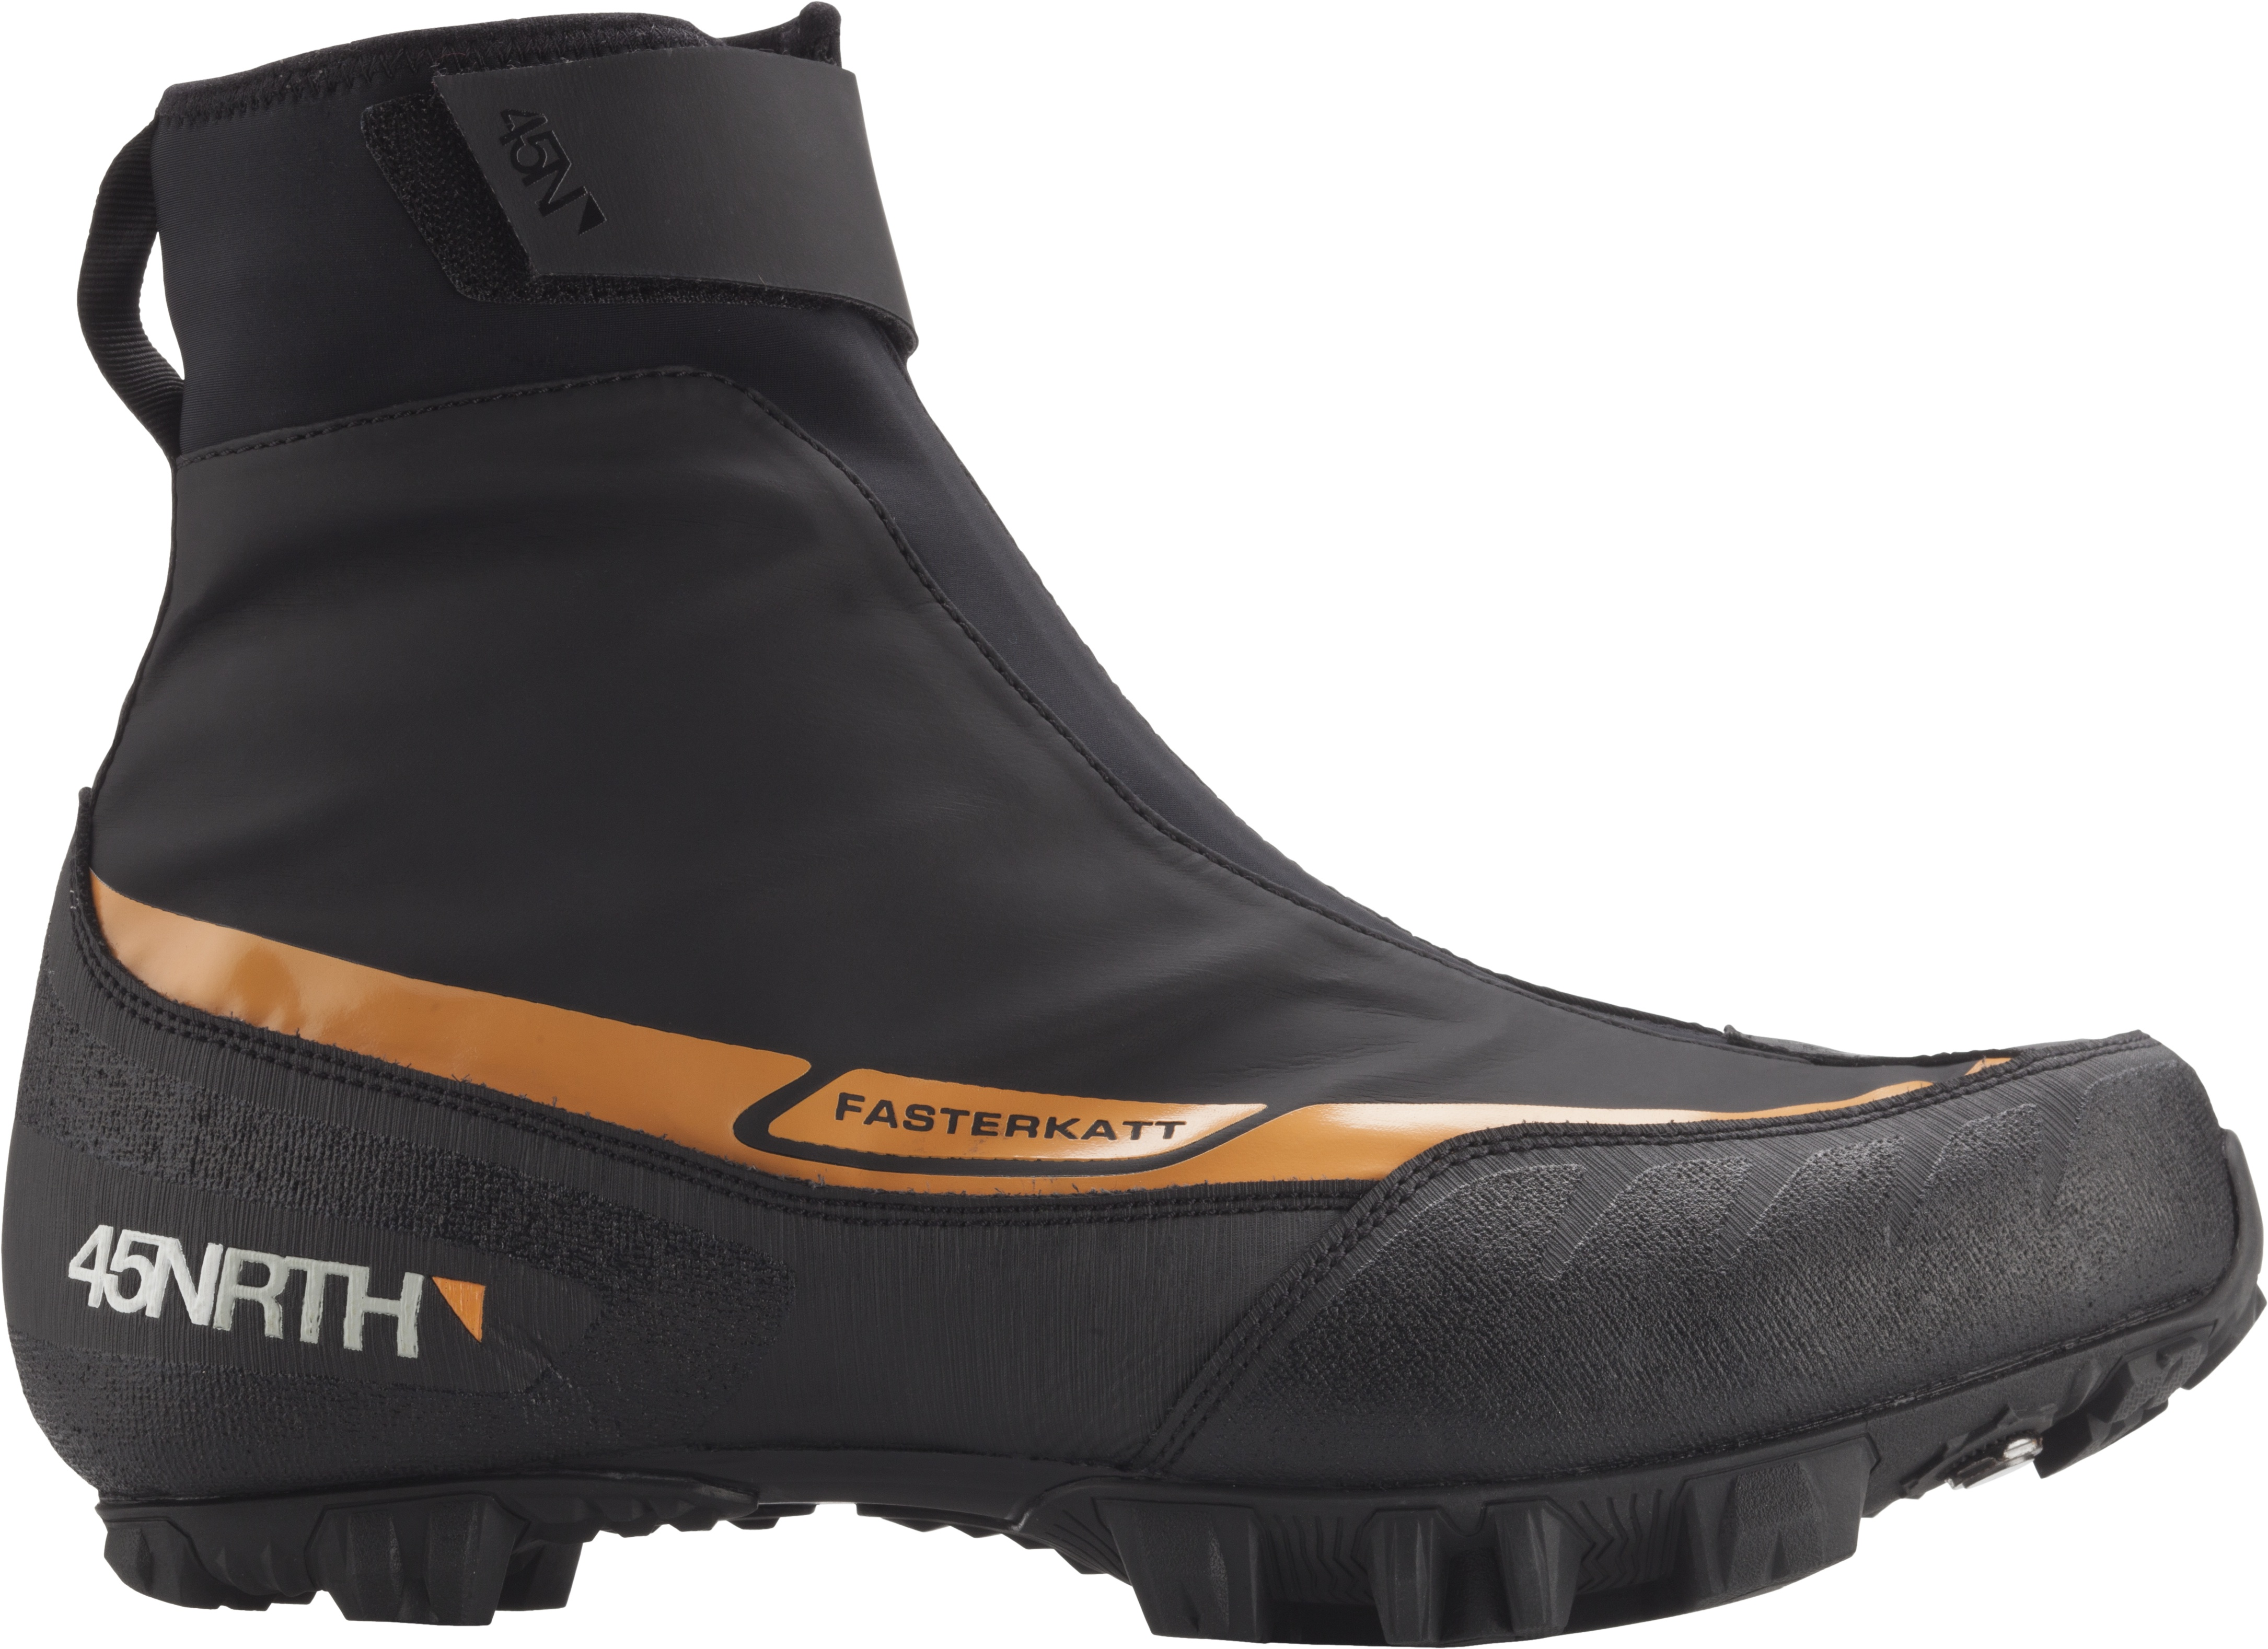 Fasterkatt Winter Cycling Shoe Bicycle Retailer And